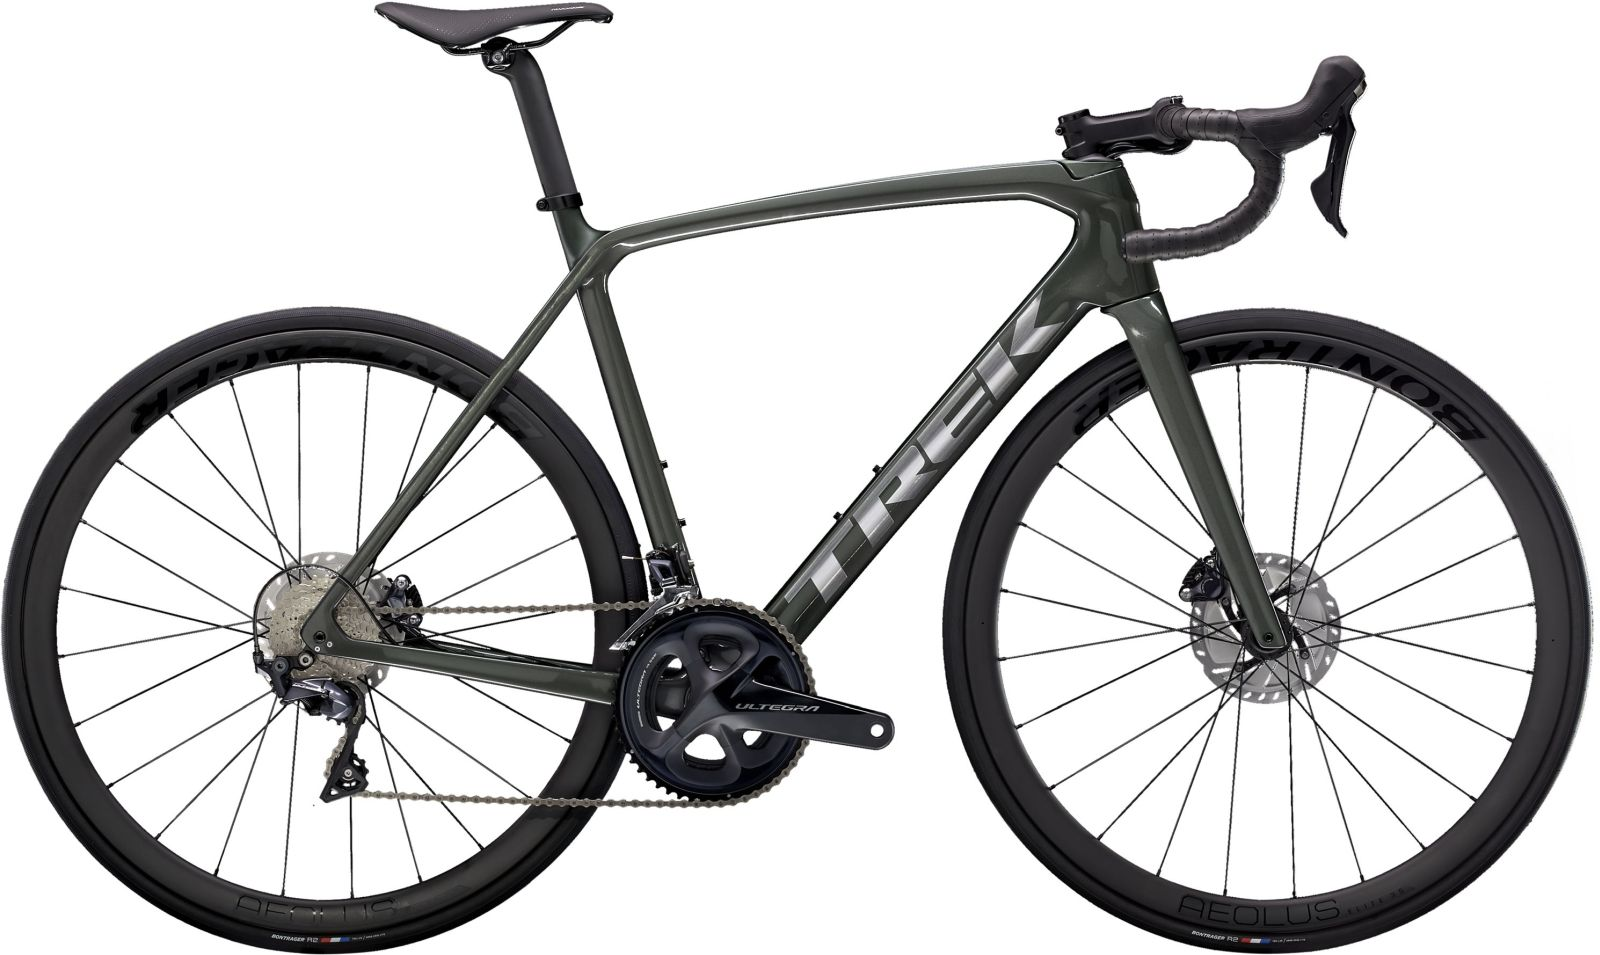 Trek Emonda SL 6 Disc Pro - Lithium Grey/Brushed Chrome 50